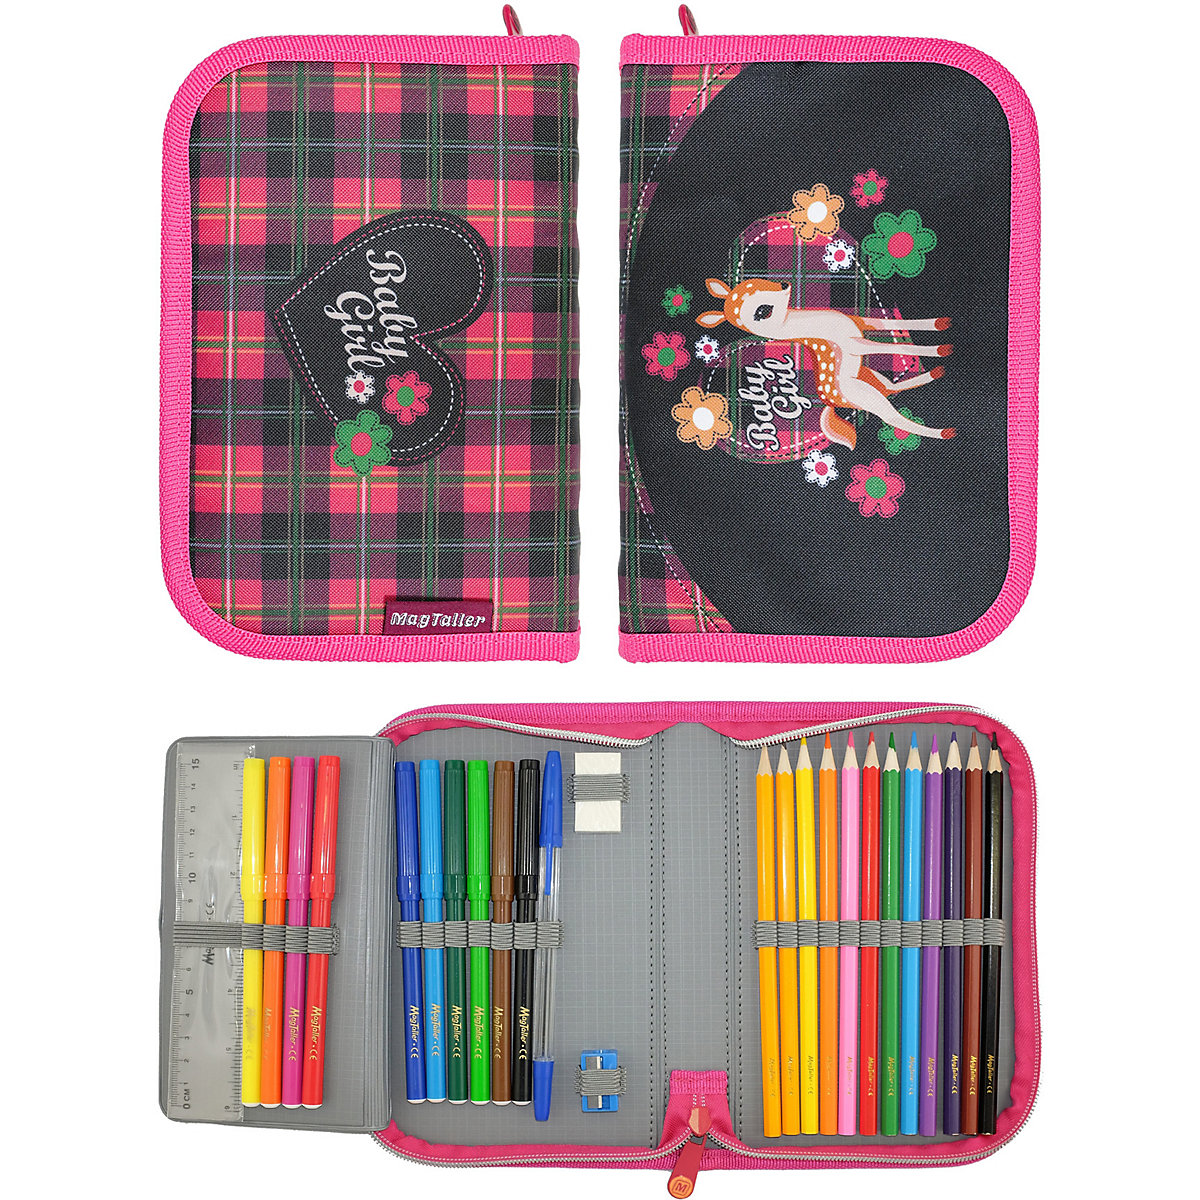 Pencil Cases MAGTALLER 11154896 school supplies stationery pencil cases for girls and boys drawing MTpromo angibabe office and school stationery pencil sharpener pink